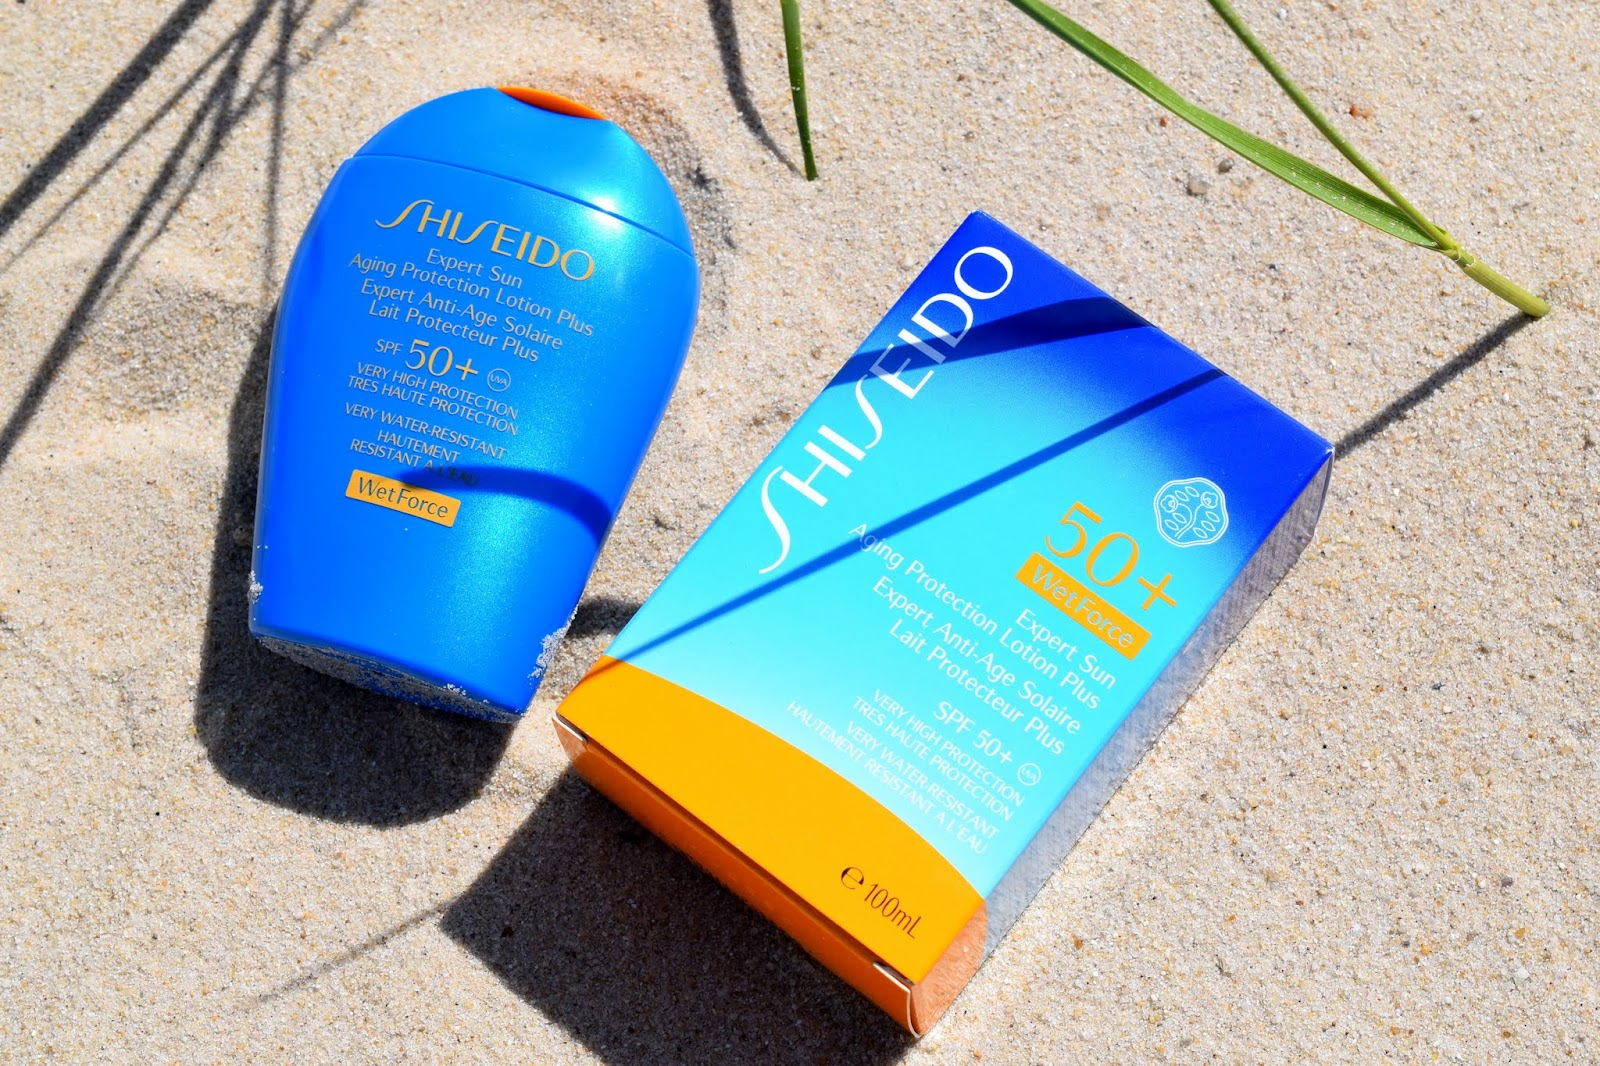 Shiseido Expert Sun Aging Protection Lotion SPF50+ WetForce